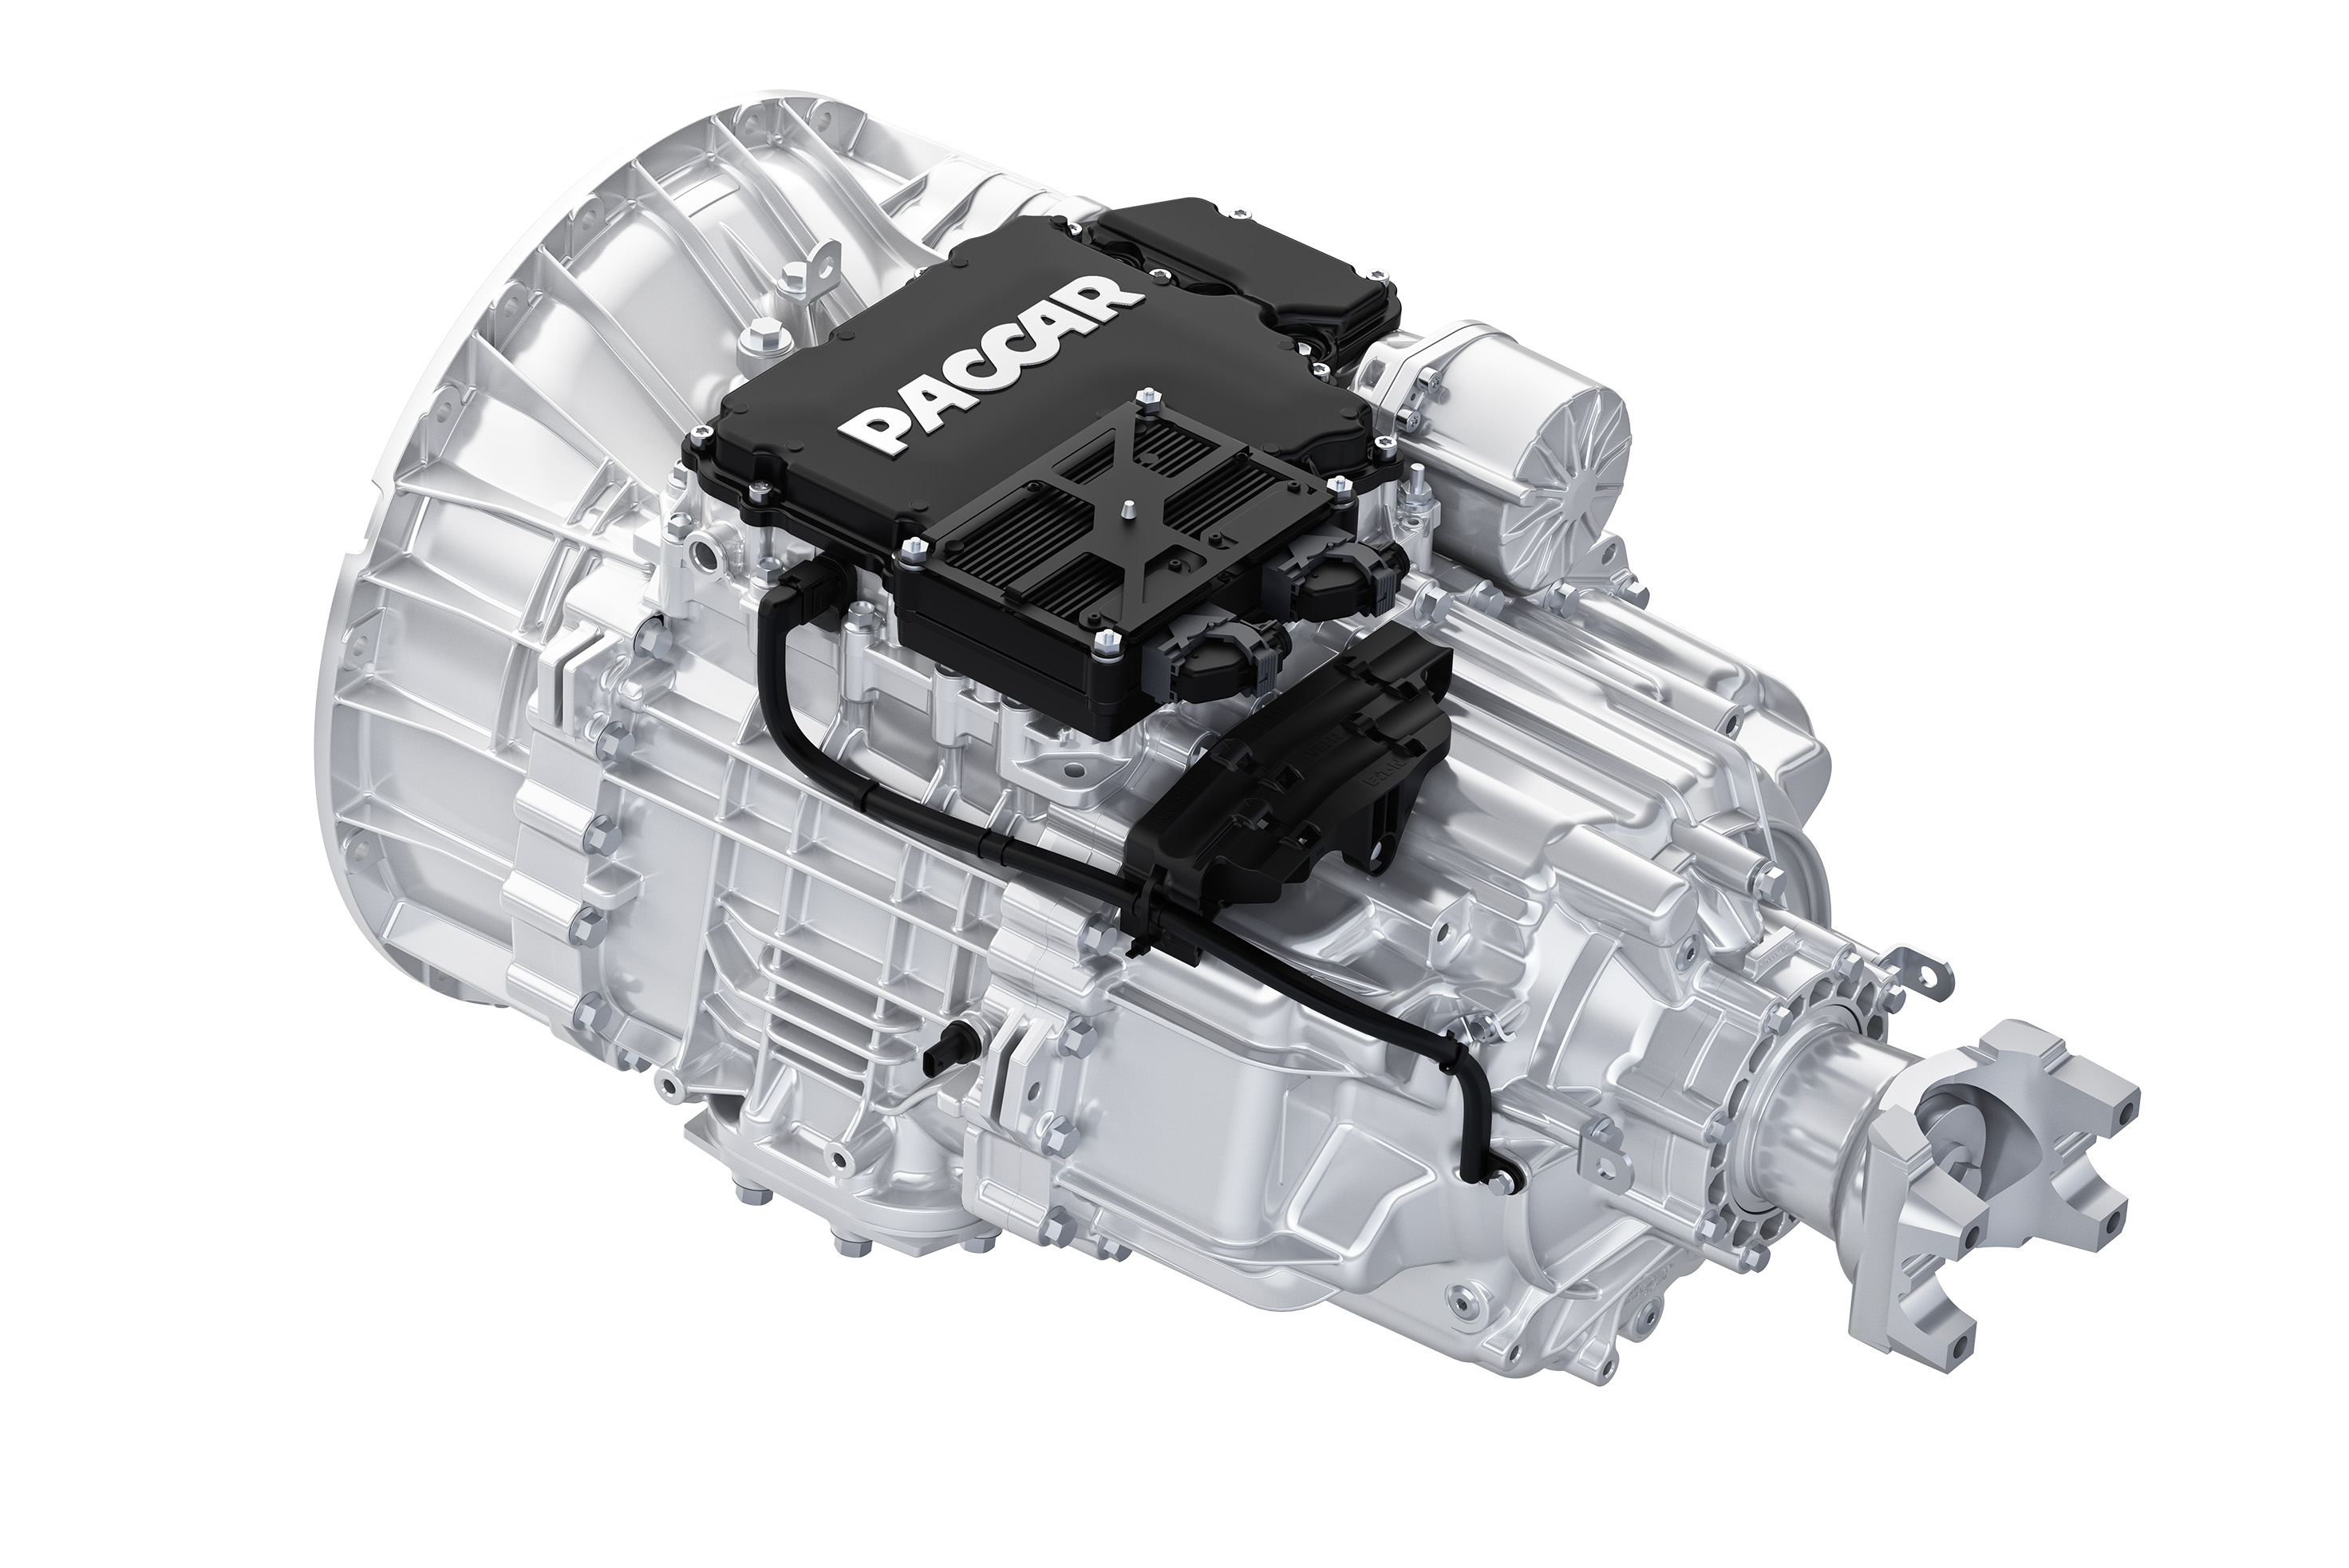 The new Paccar transmission